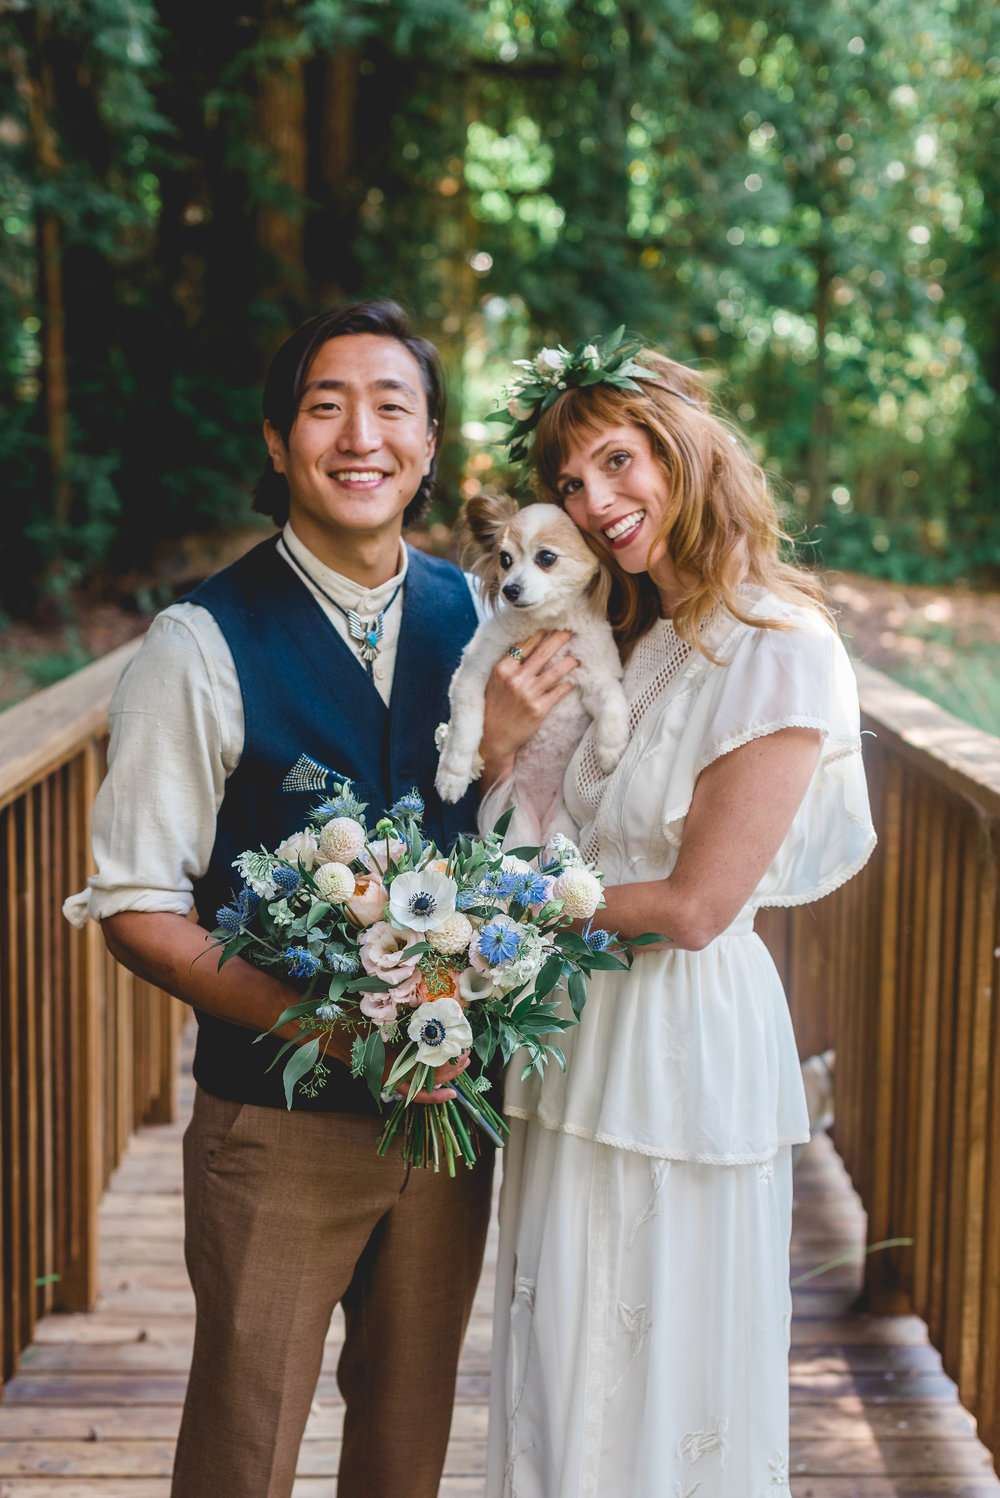 An intimate wedding in the Bay area| One Photographer